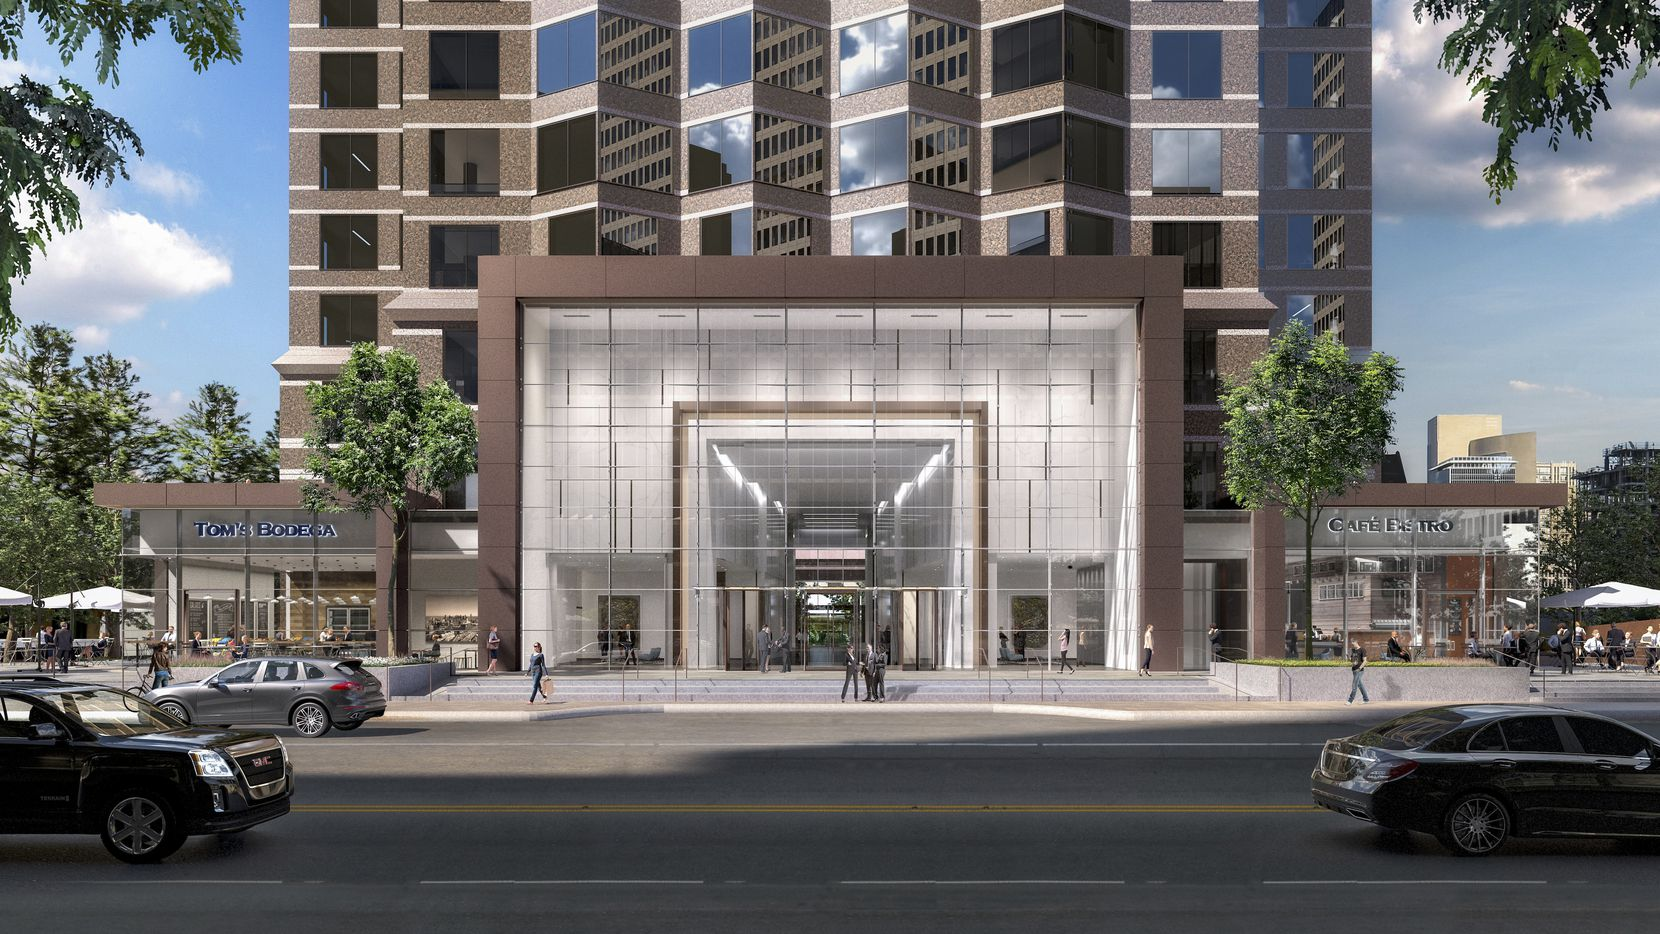 Goldman Sachs has moved into more than six floors in downtown Dallas' Trammell Crow Center tower which is being remodeled.